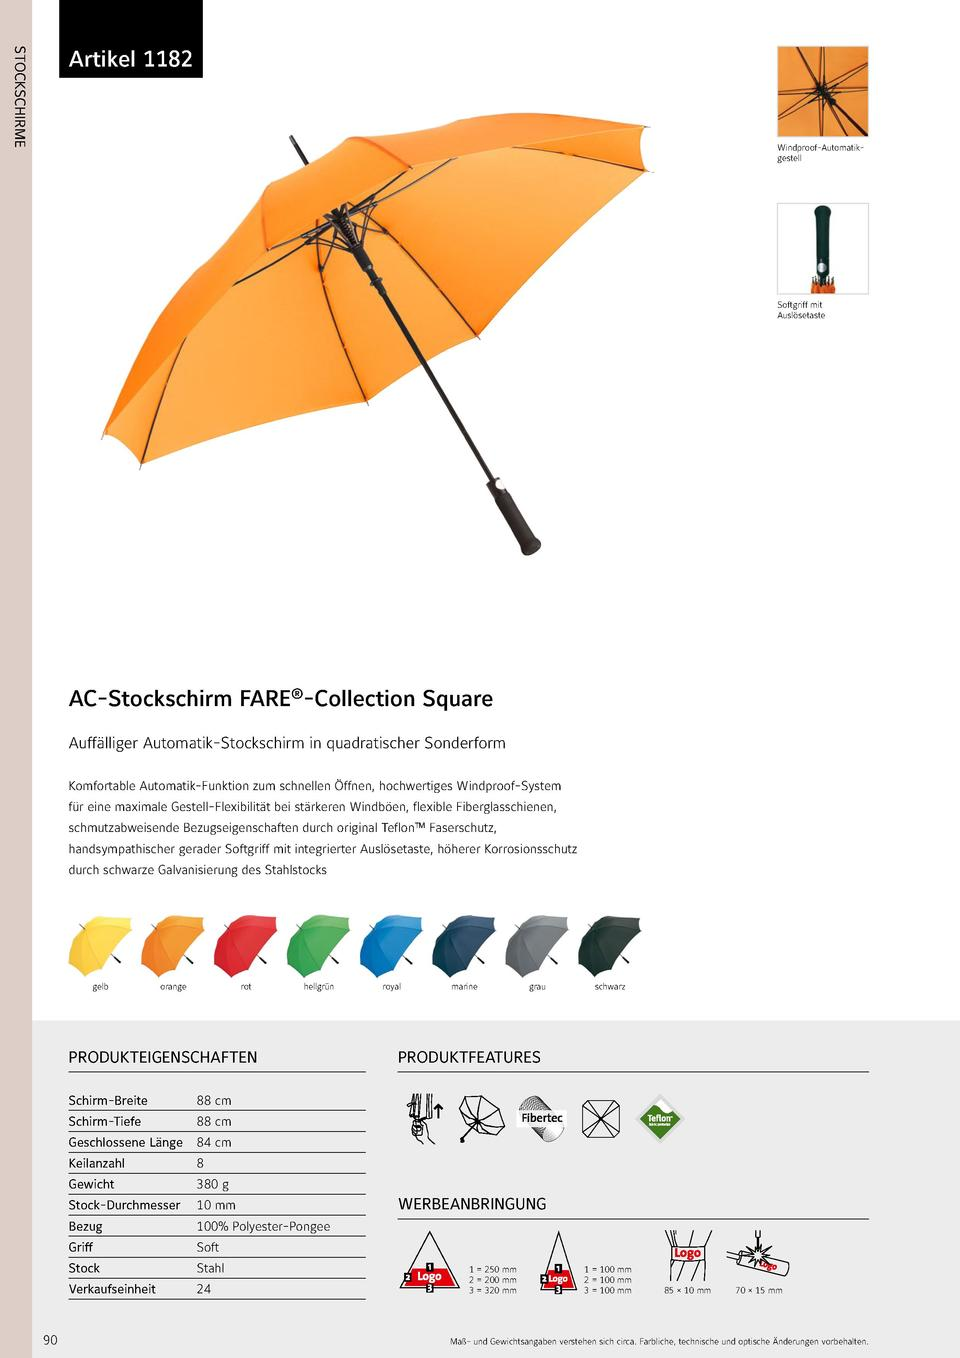 1182  STOCKSCHIRME  Artikel 1182  Windproof-Automatikgestell  Softgriff mit Ausl  setaste  AC-Stockschirm FARE  -Collectio...